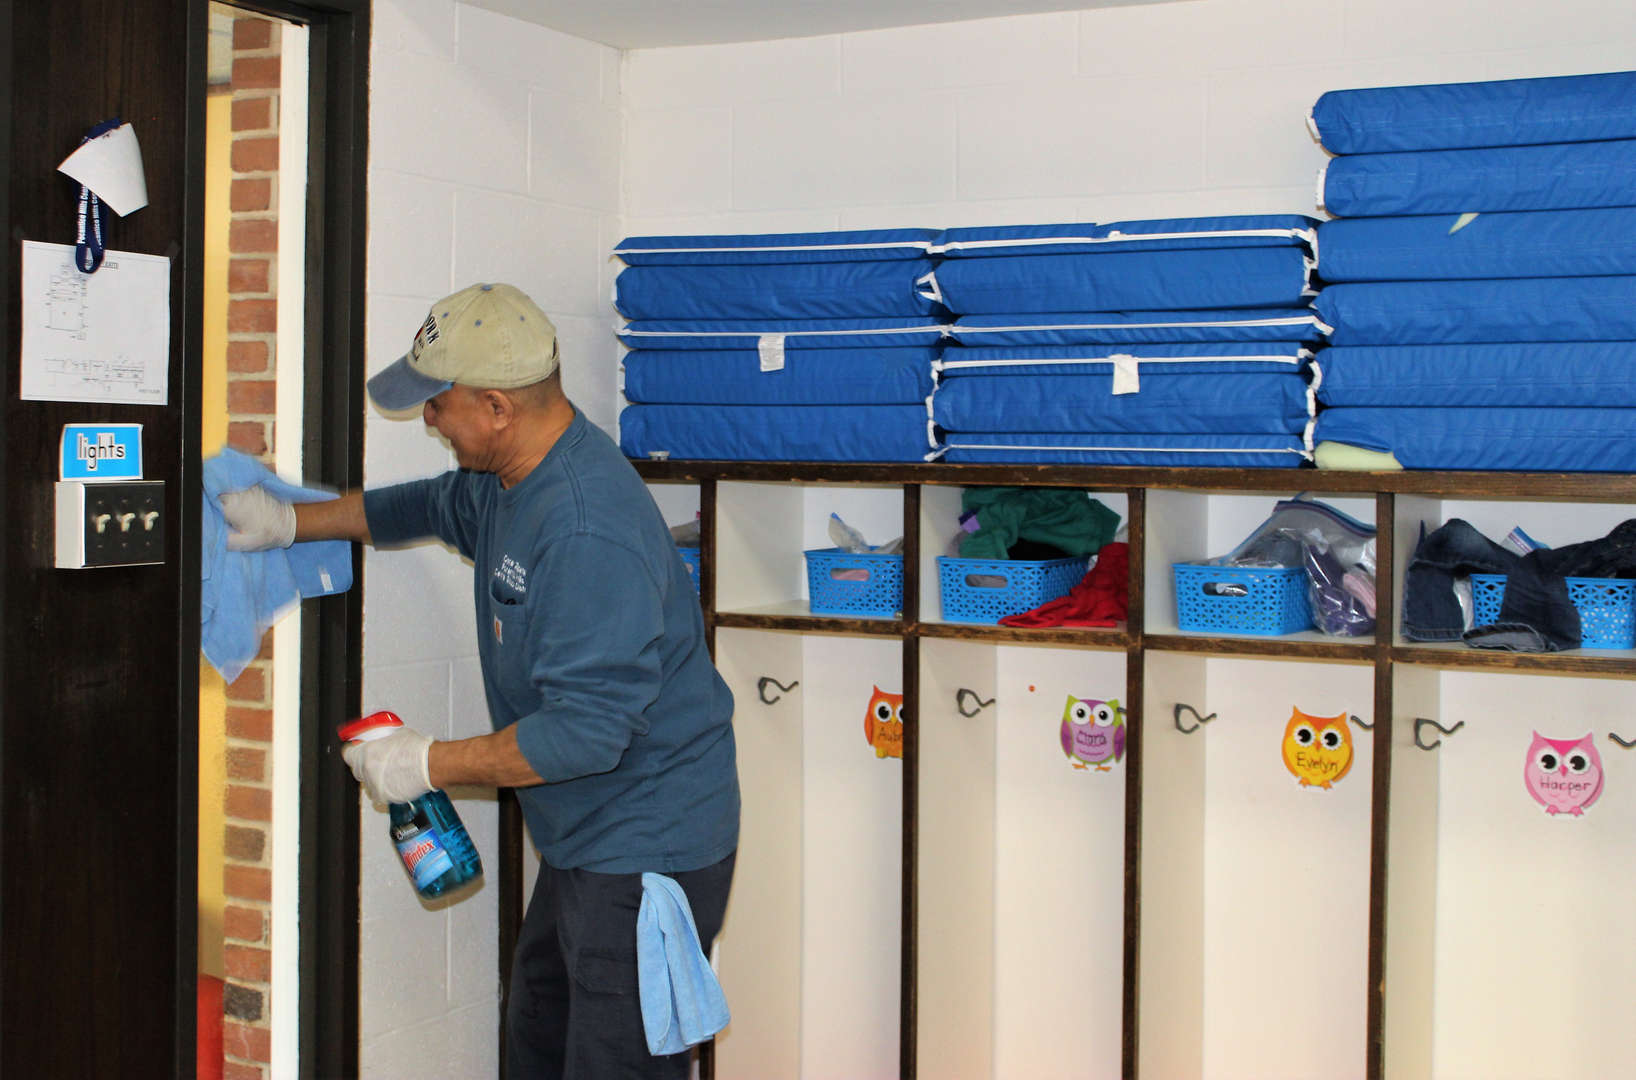 A member of the school's custodial staff helps clean a classroom.